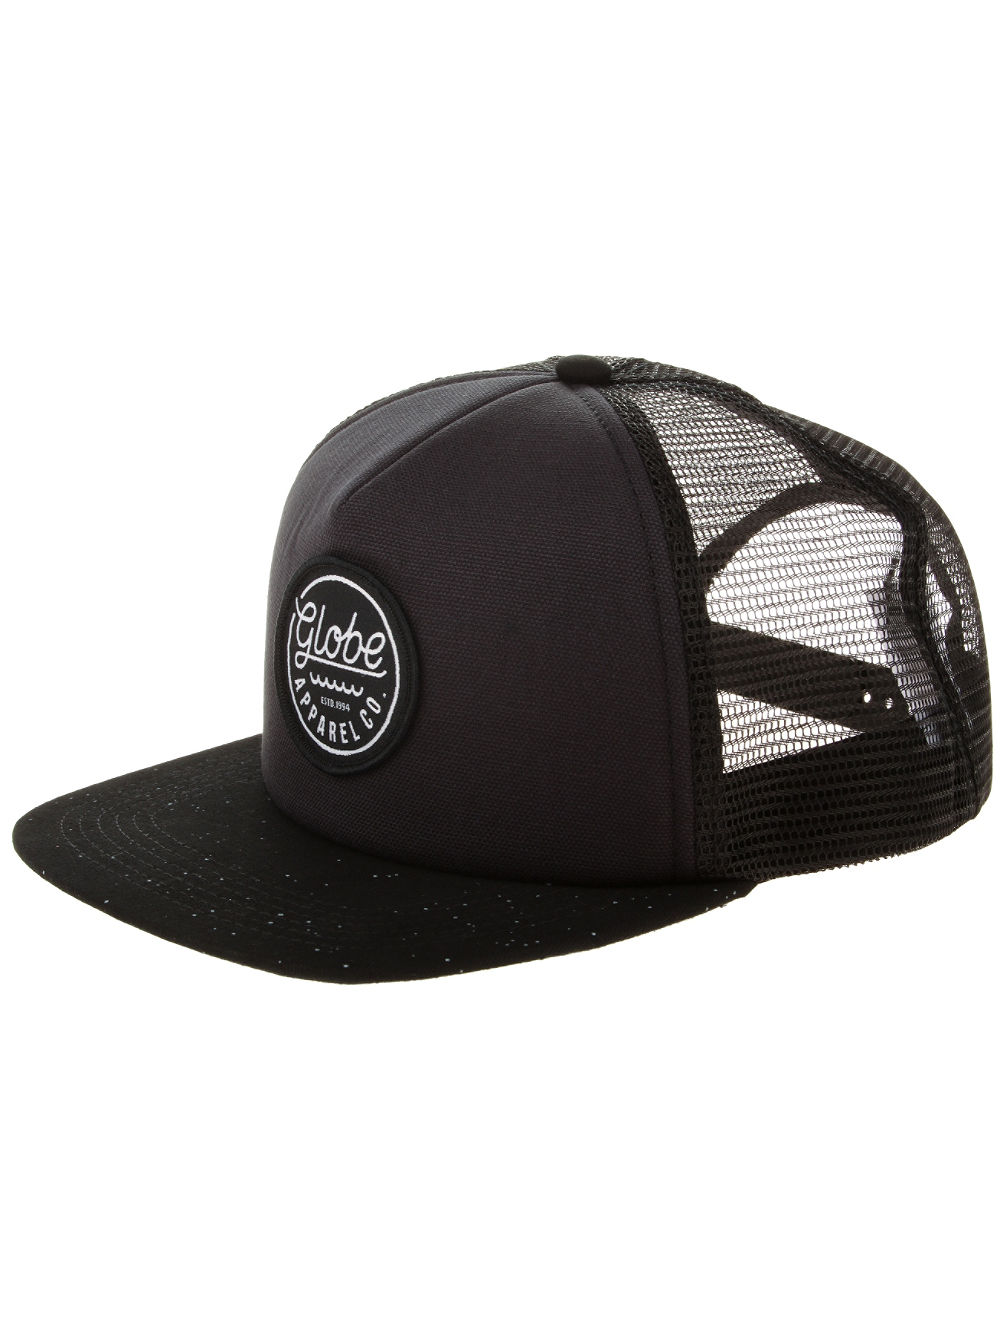 expedition-snap-back-cap